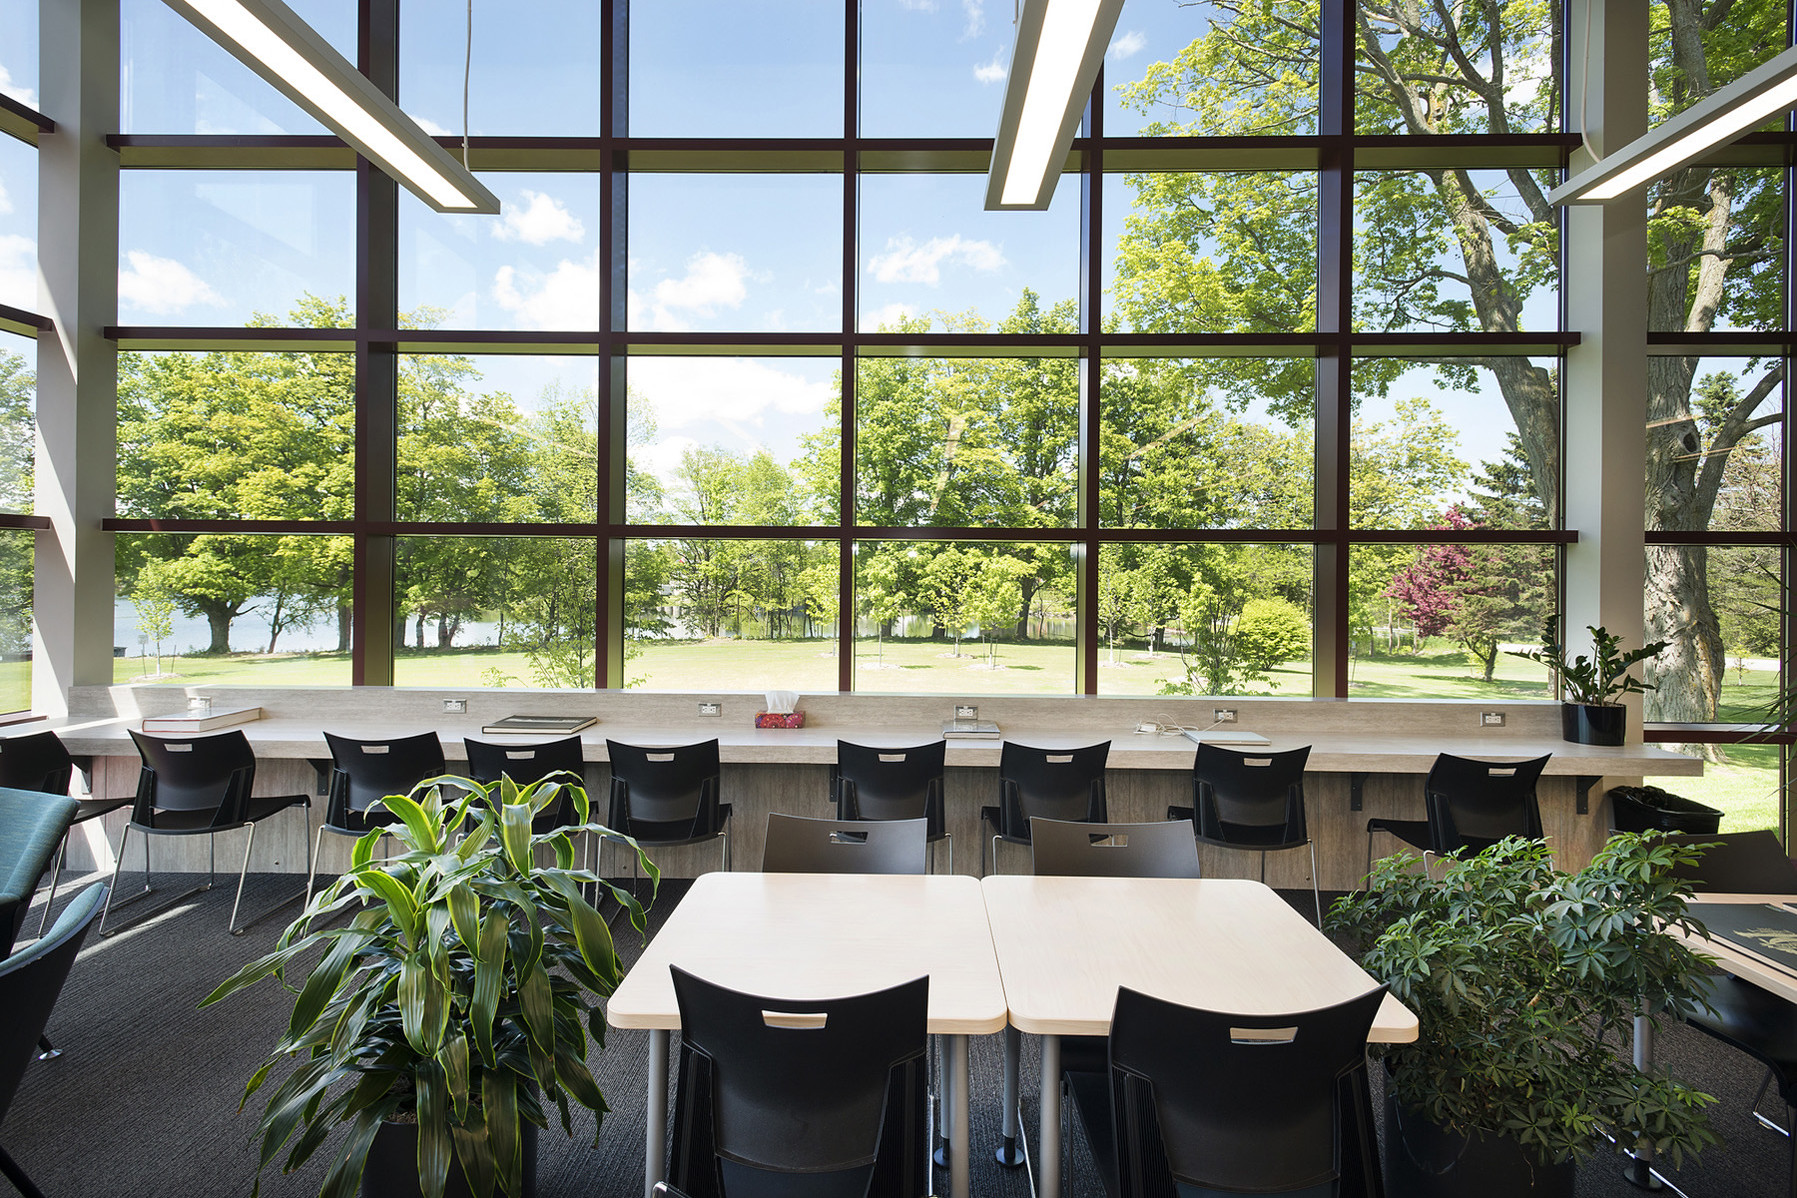 Group study desks and individual study bench seating in bright window with views of trees